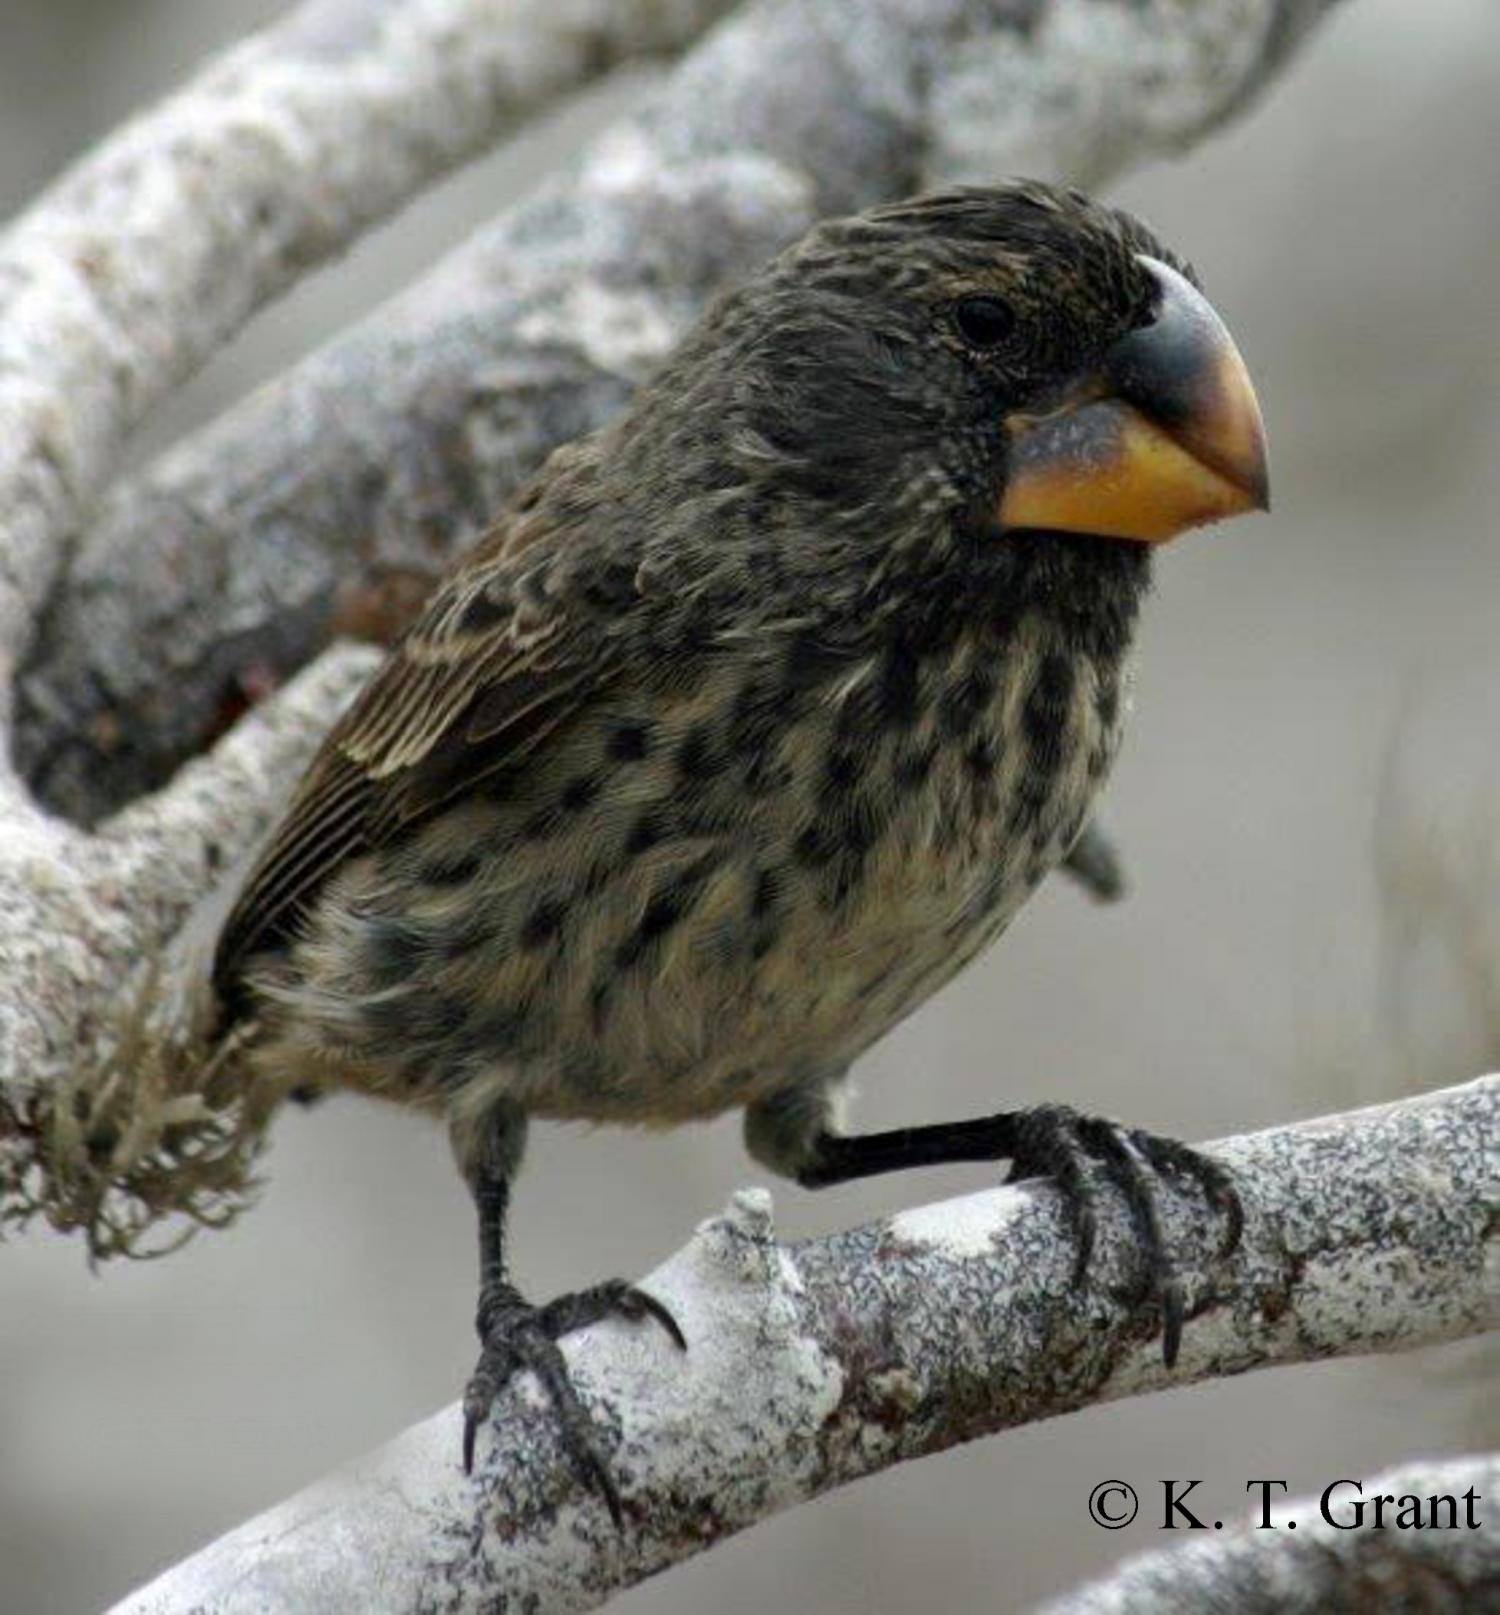 in action detected in Darwin's finches